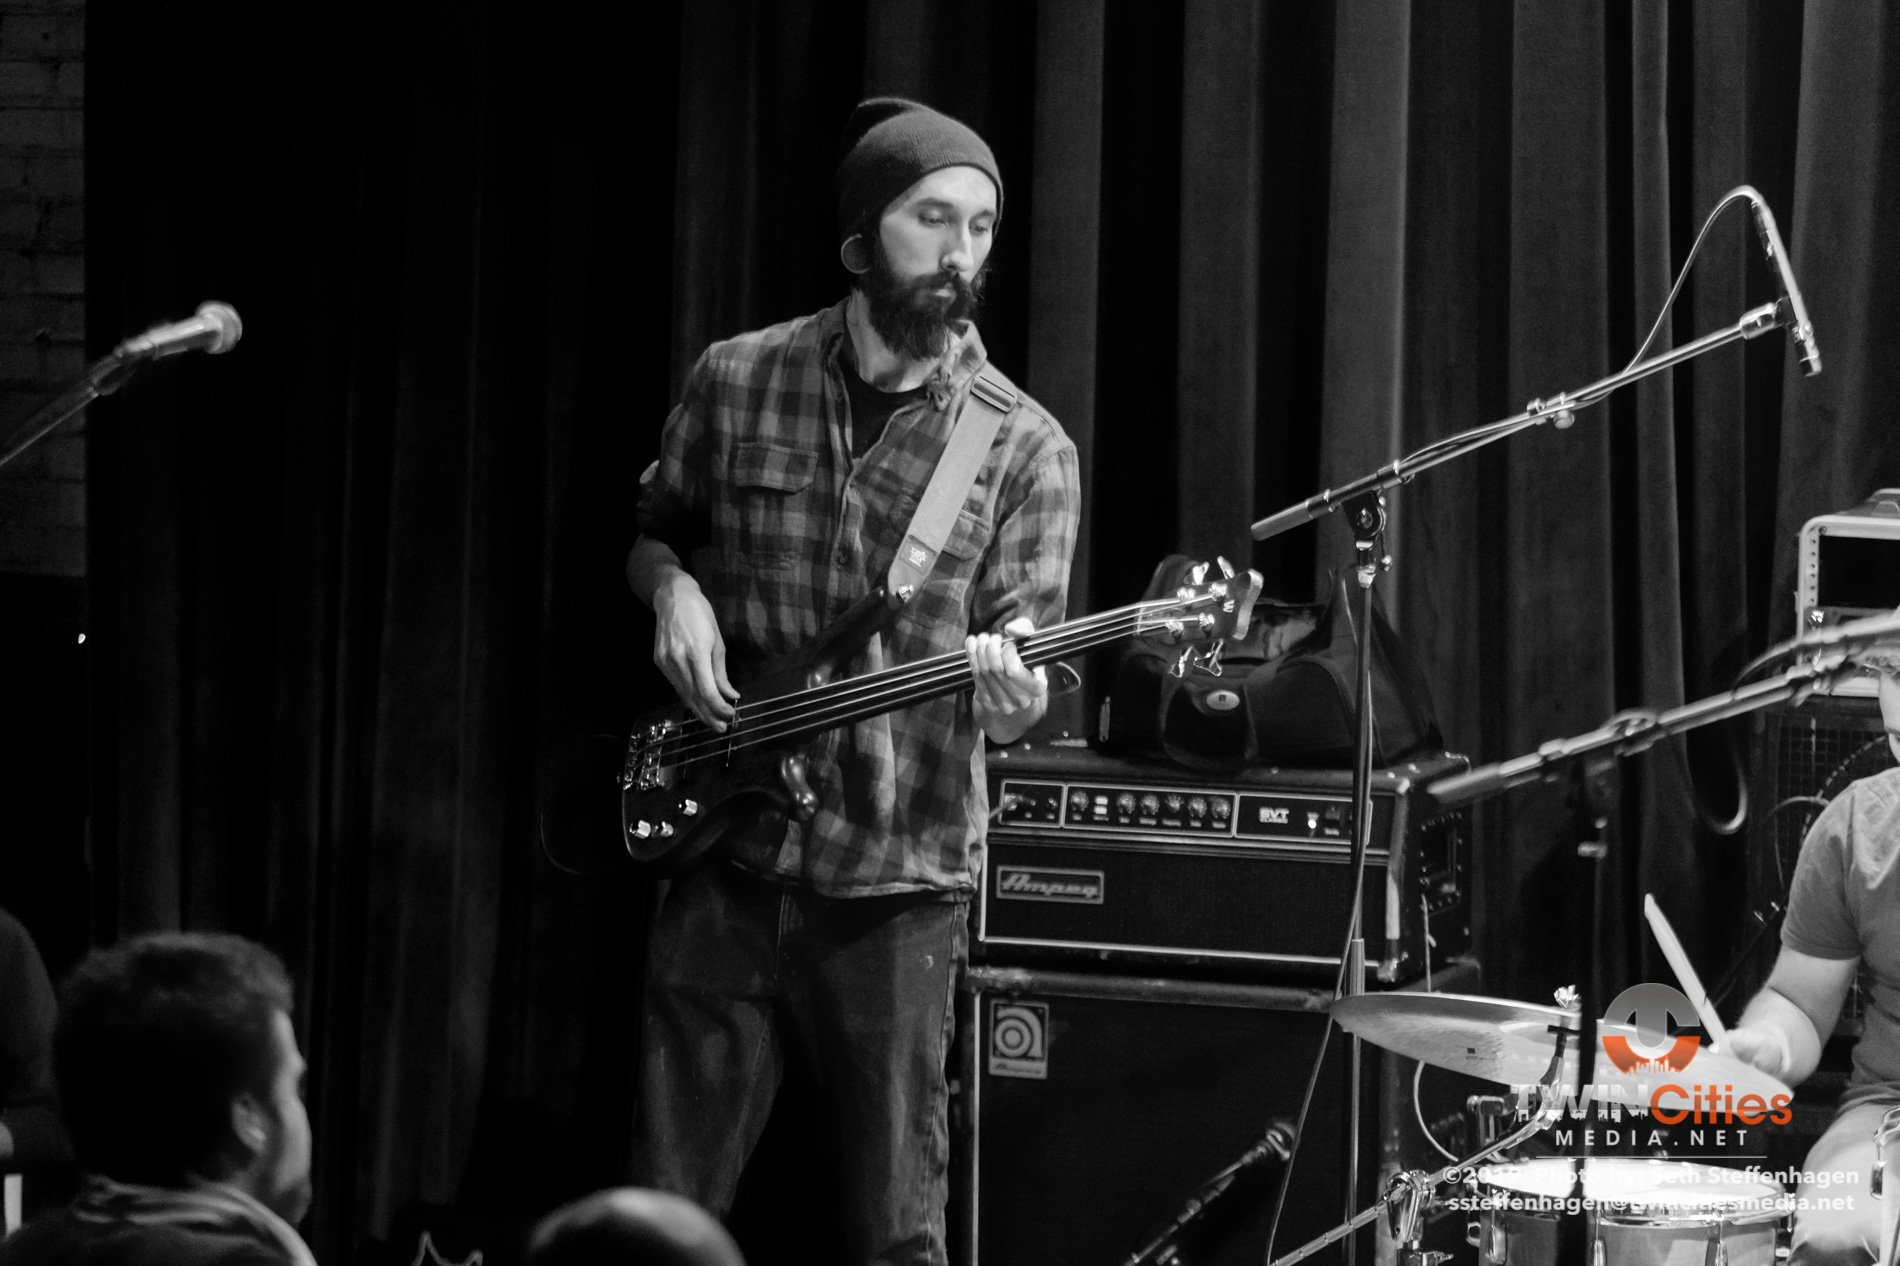 January 18, 2019 - Minneapolis, Minnesota, United States -  Hardcore Crayons live in concert at the Icehouse. Opening for Self-Evident's Lost Inside The Machinery album release show.  (Photo by Seth Steffenhagen/Steffenhagen Photography)